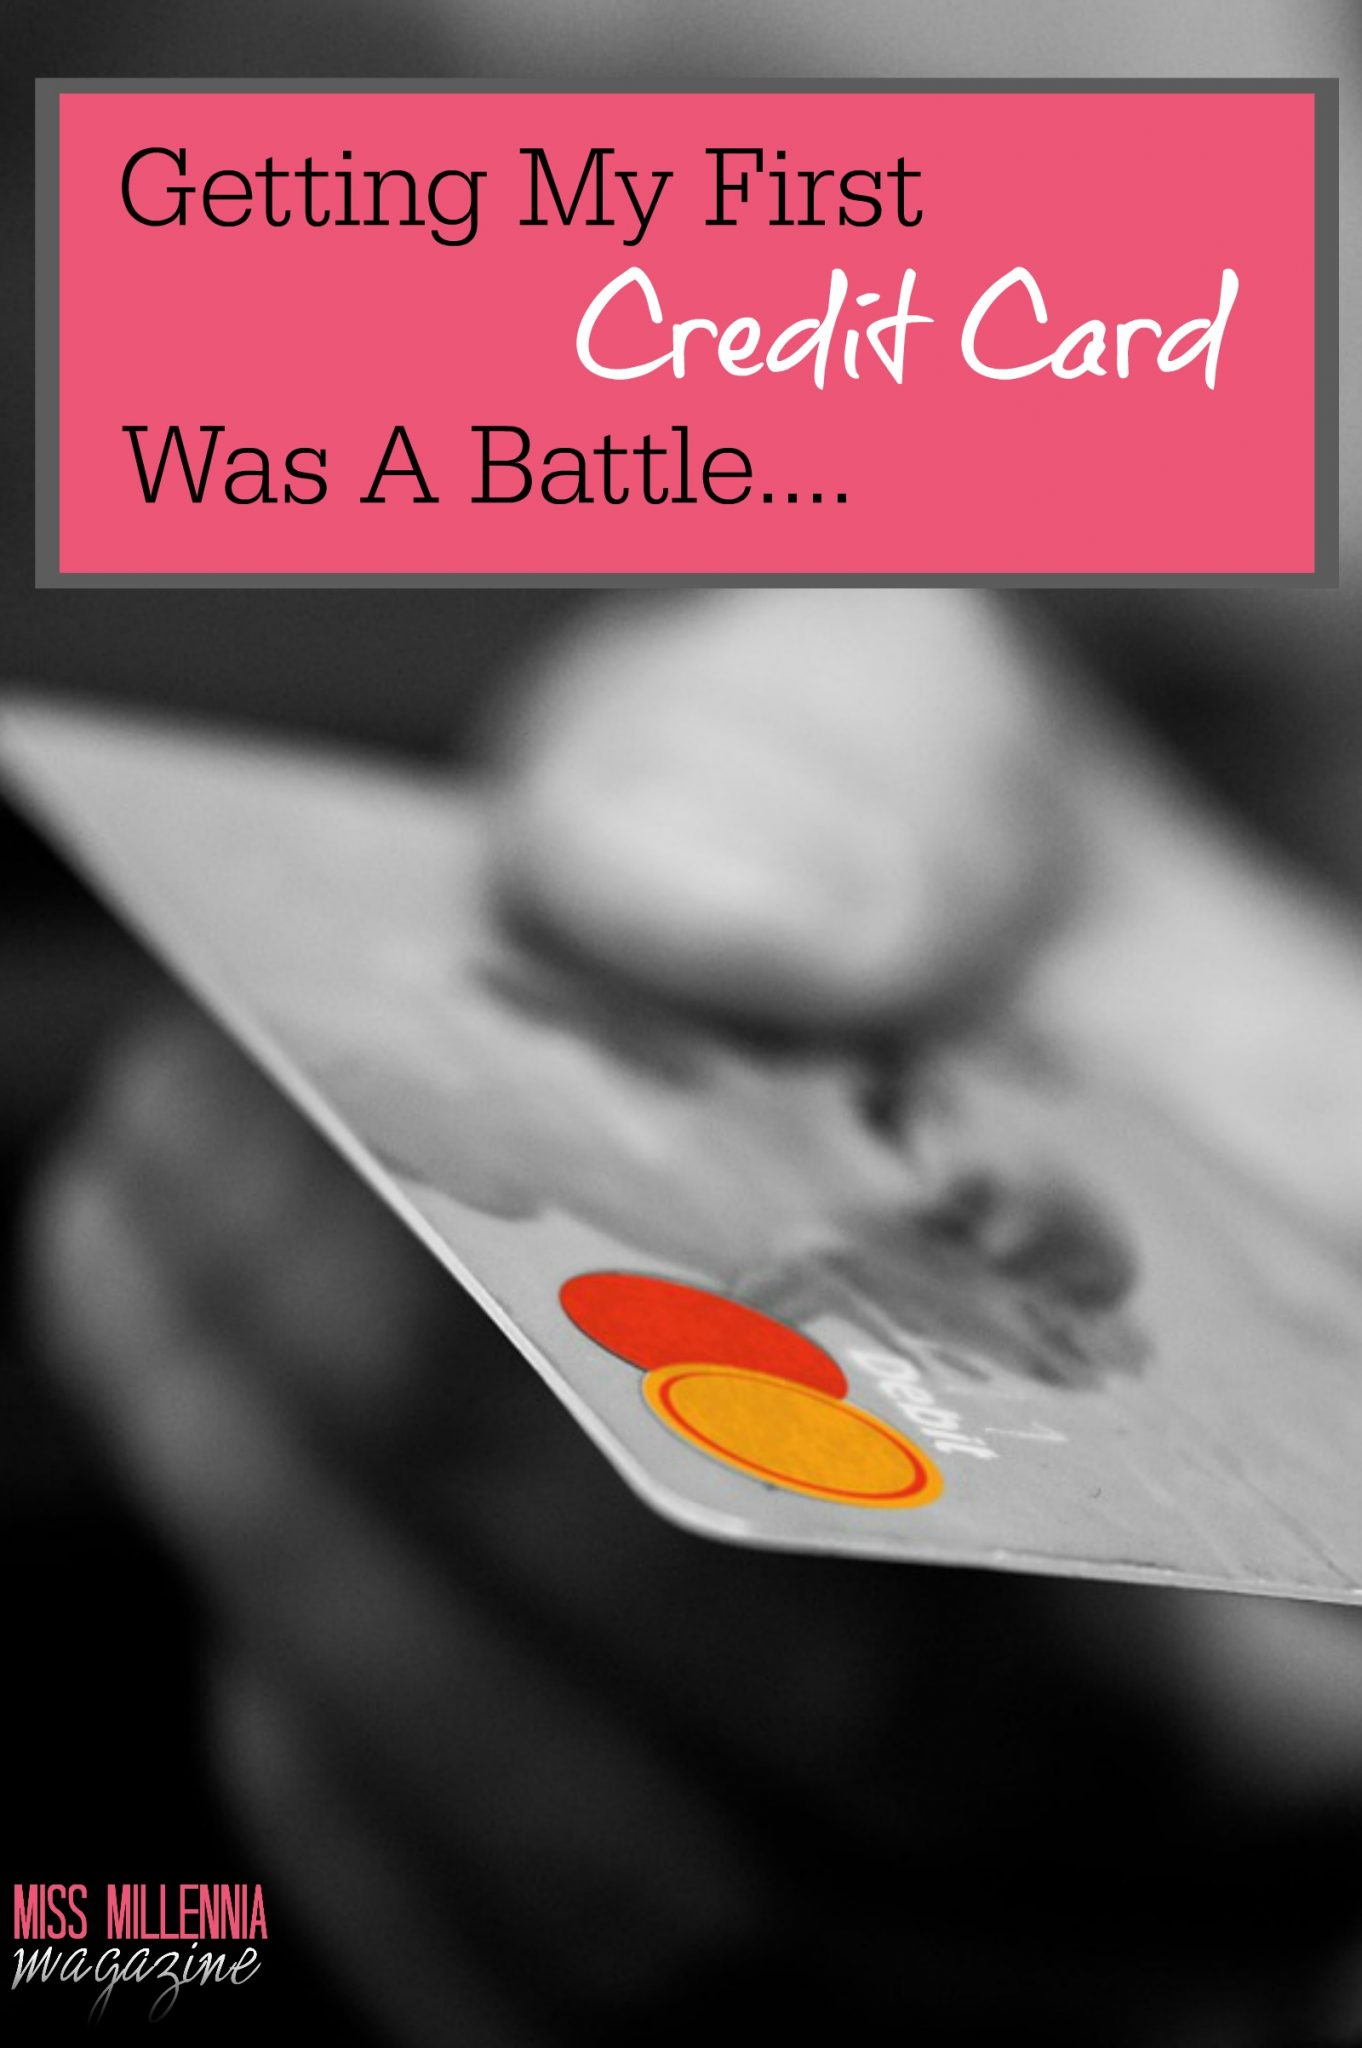 Getting My First Credit Card Was A Battle